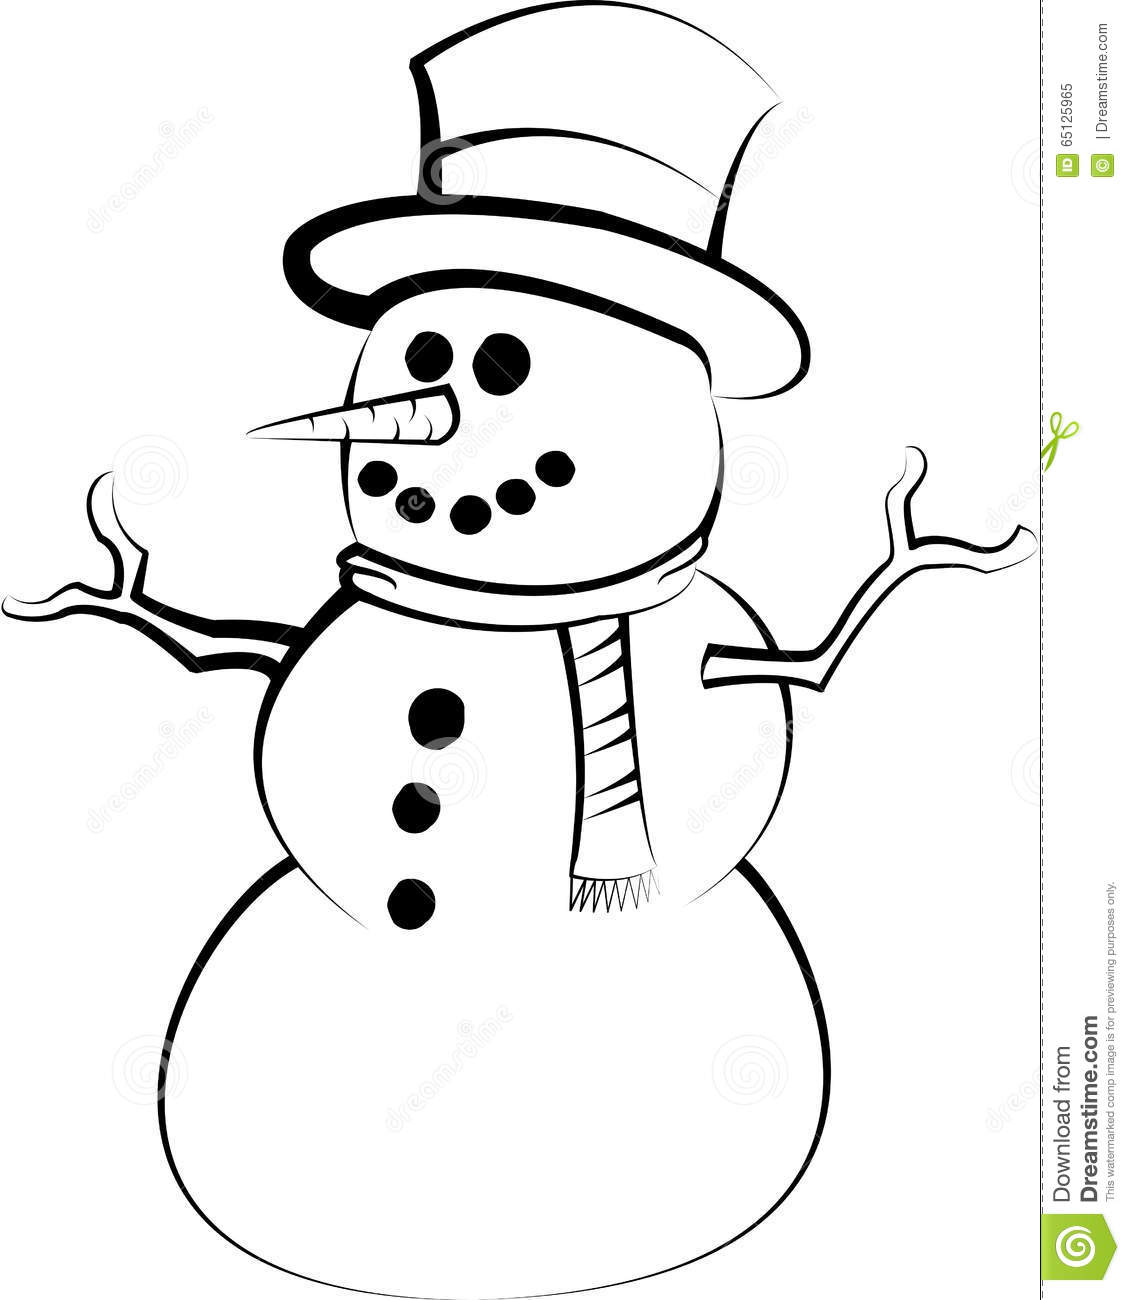 Uncategorized Drawing Of A Snowman snowman drawing illustration 65125965 megapixl drawing